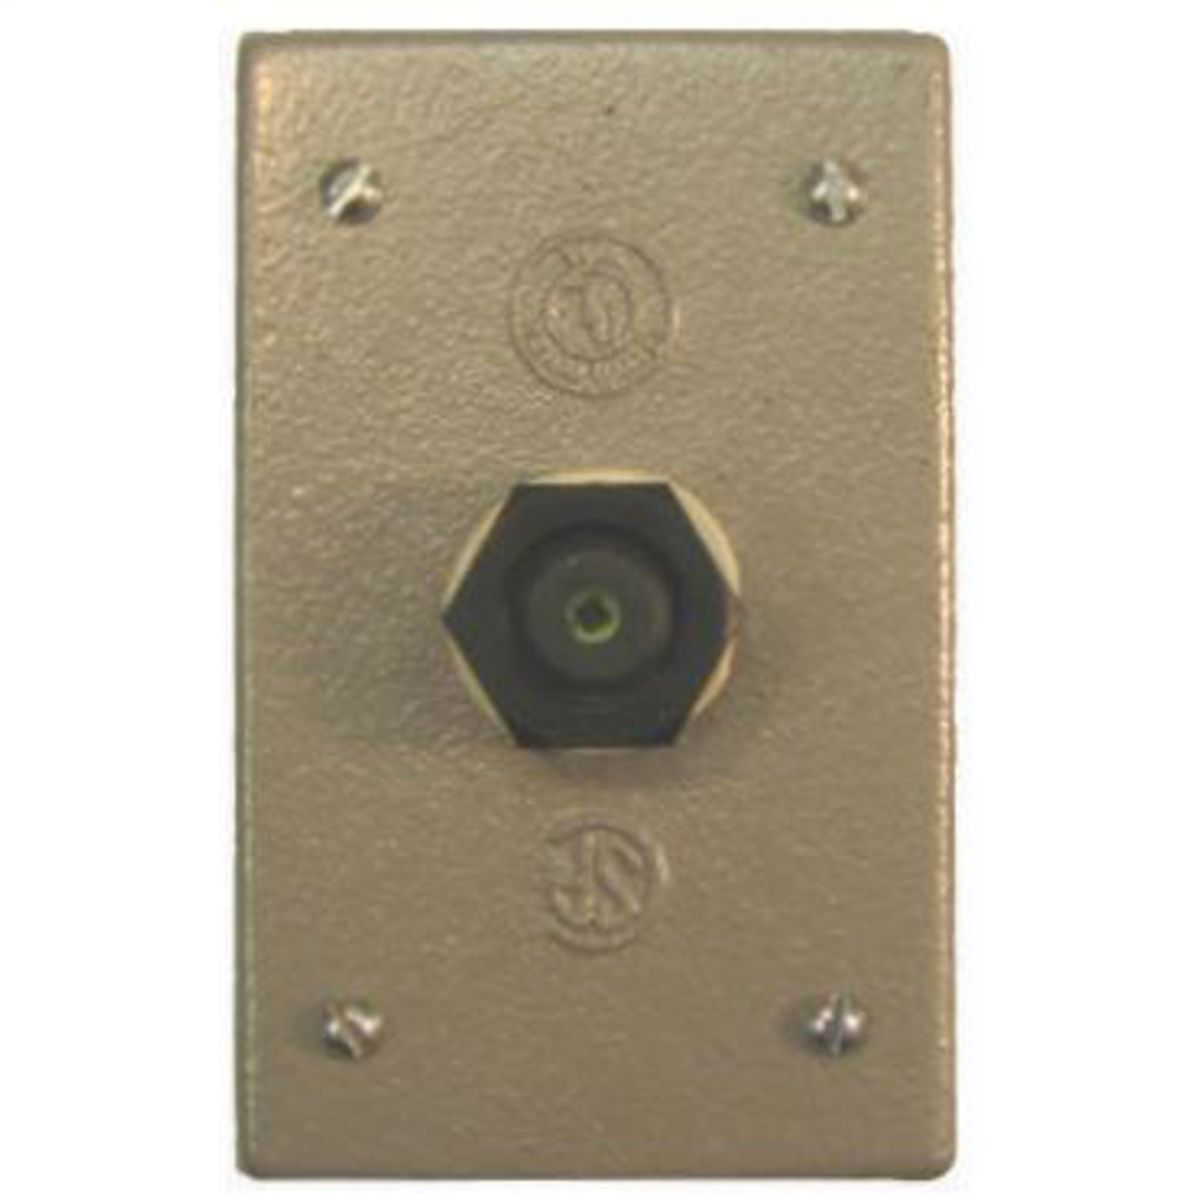 KIL VMFSPC1 COVER AND PHOTOCELL